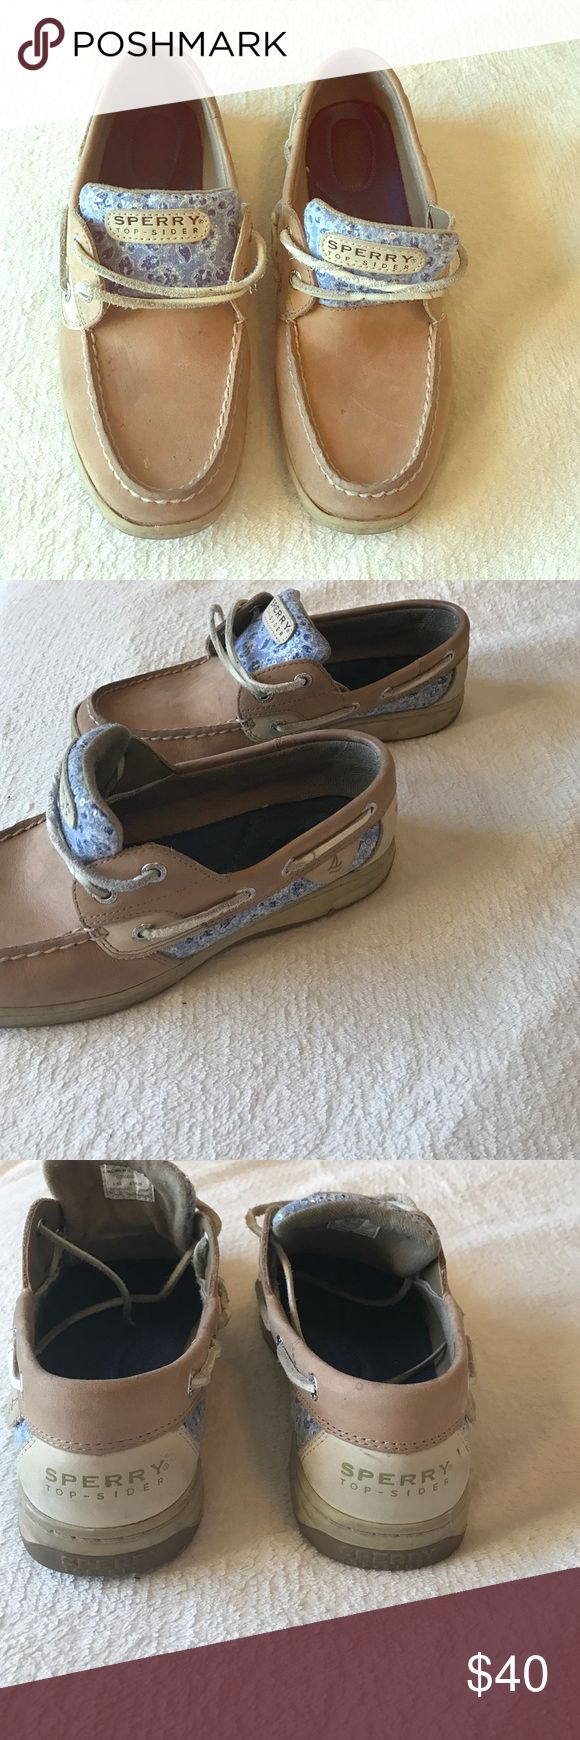 Blue sequin Sperrys Great condition! Worn maybe 5 times. They do have some dirt on them but I will clean them when they sell so they'll be good as new! 8M. Sperry Top-Sider Shoes Flats & Loafers